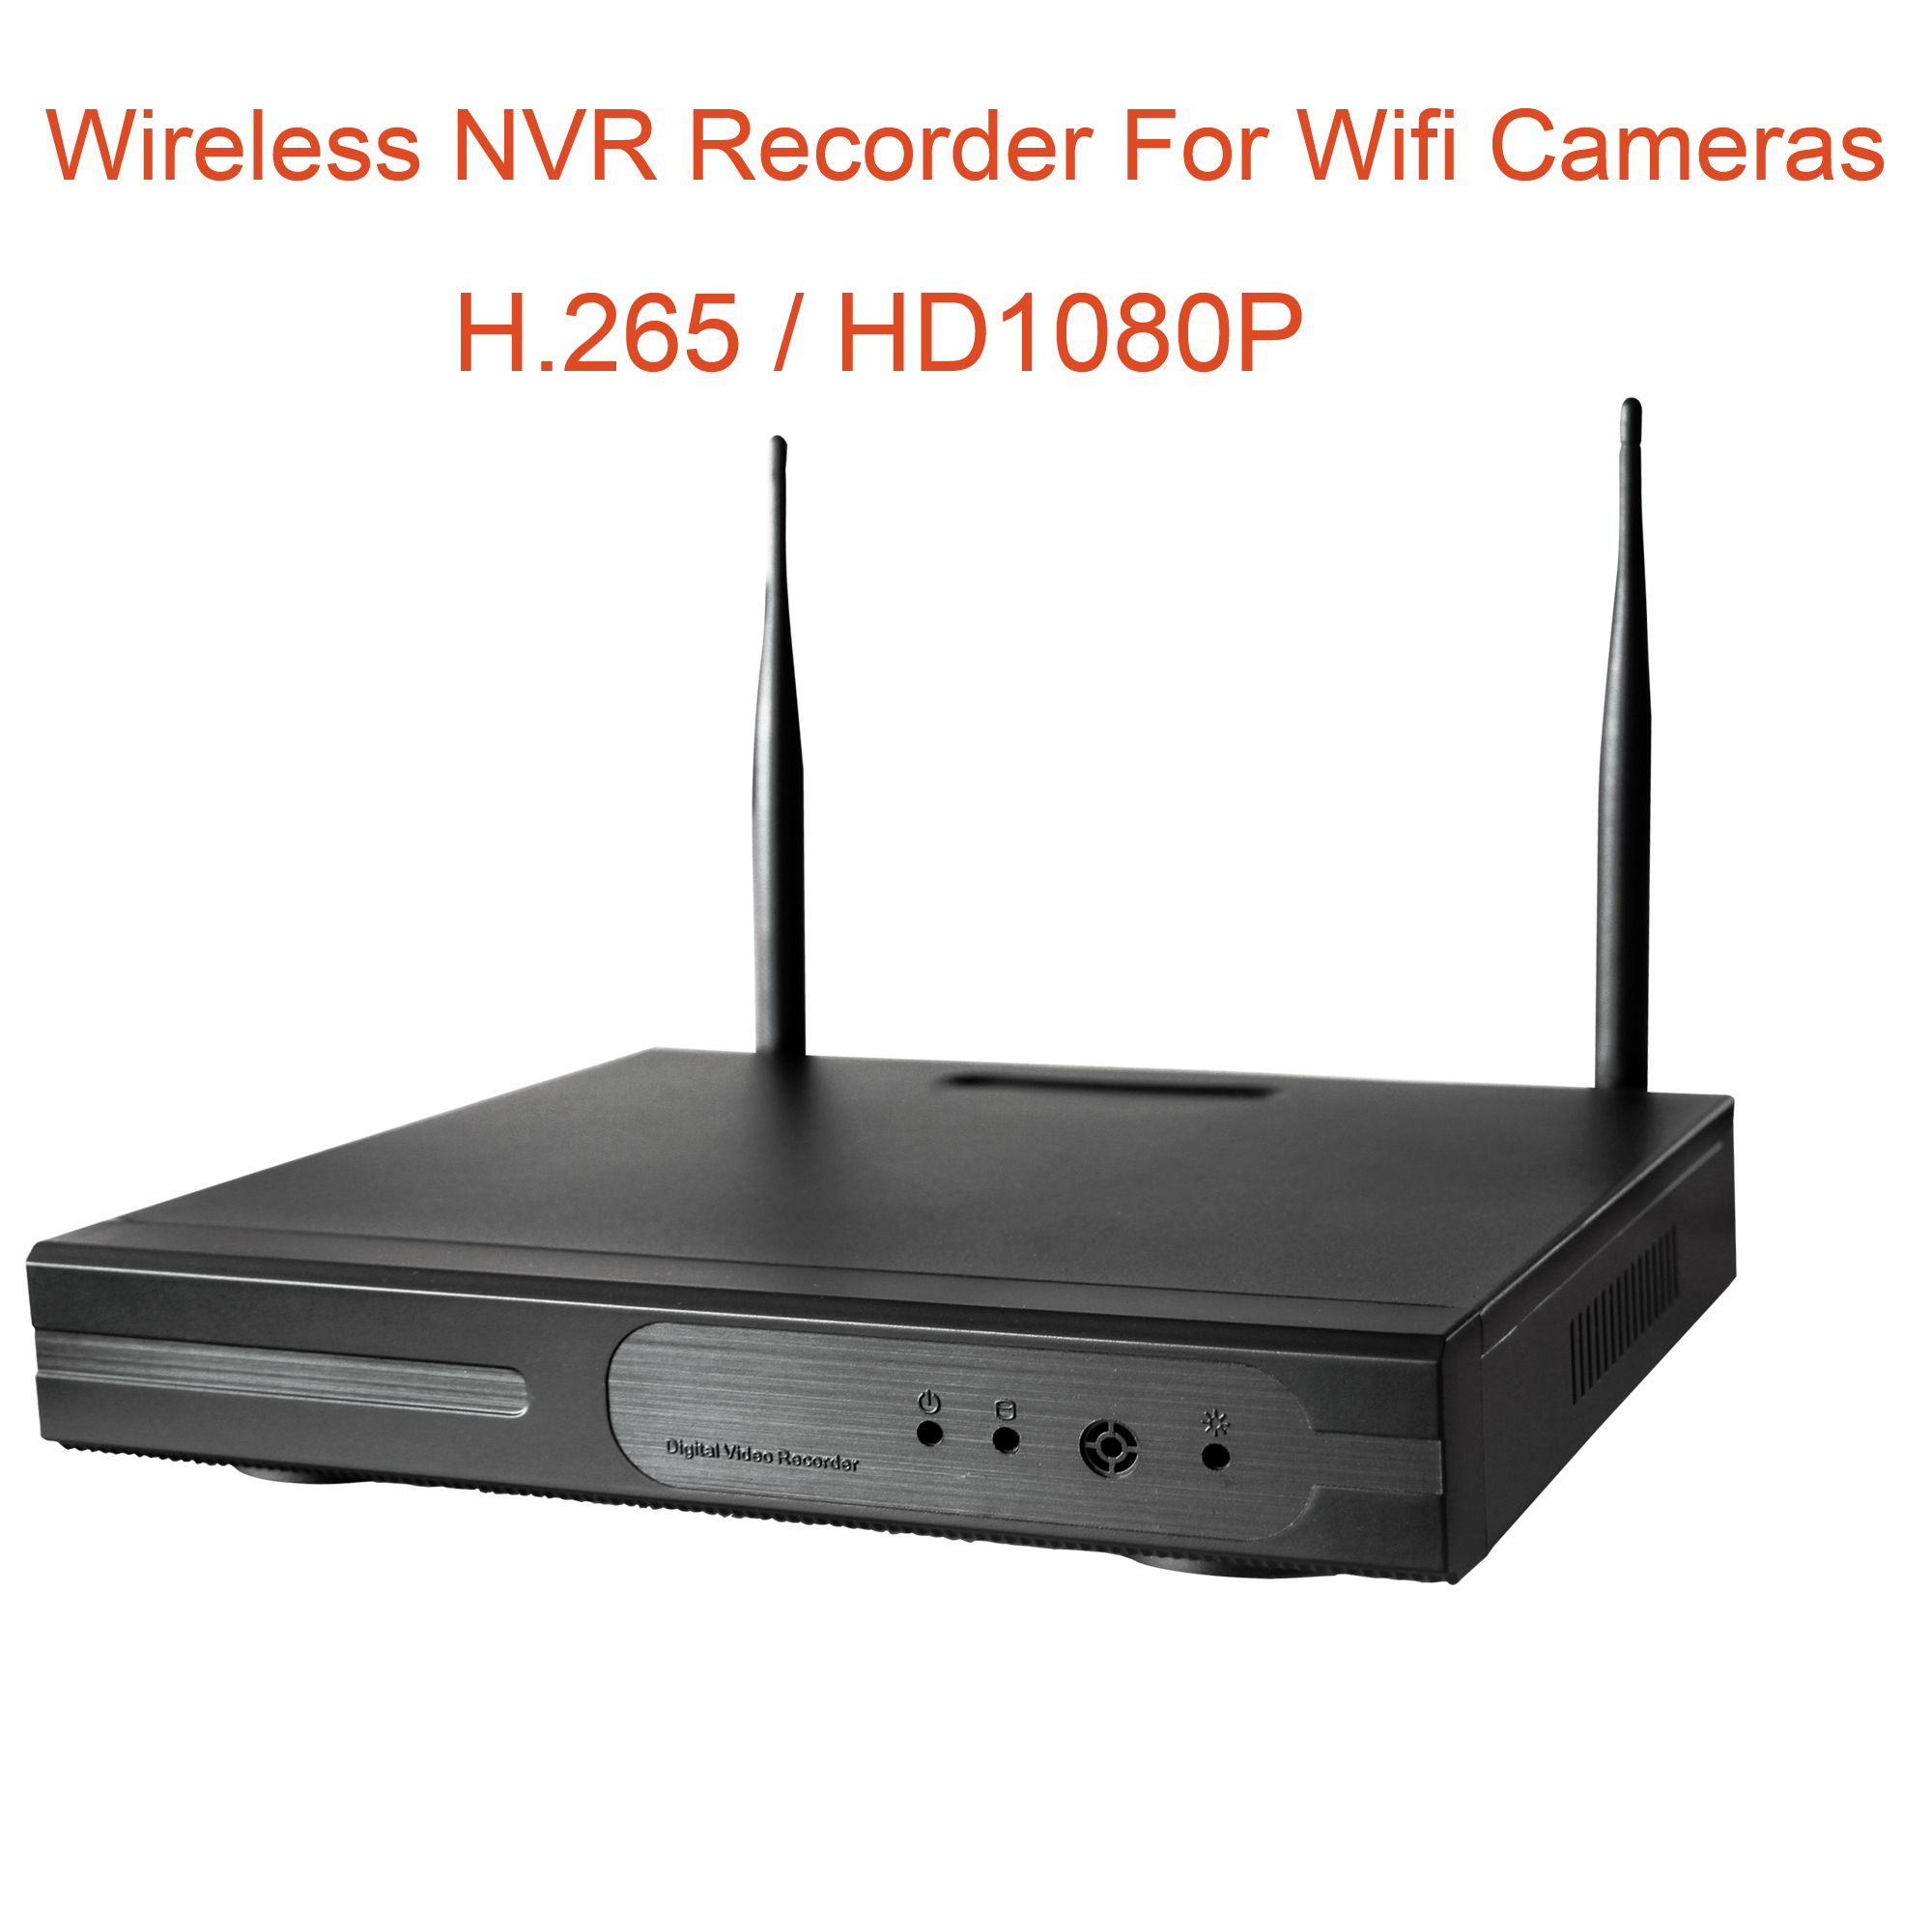 8CH H.265  HD1080P wireless NVR recorder for wirelss cctv camera system addmore wifi cctv cameras toNVR recorder NO POWER SUPPLY|Surveillance Video Recorder| |  -